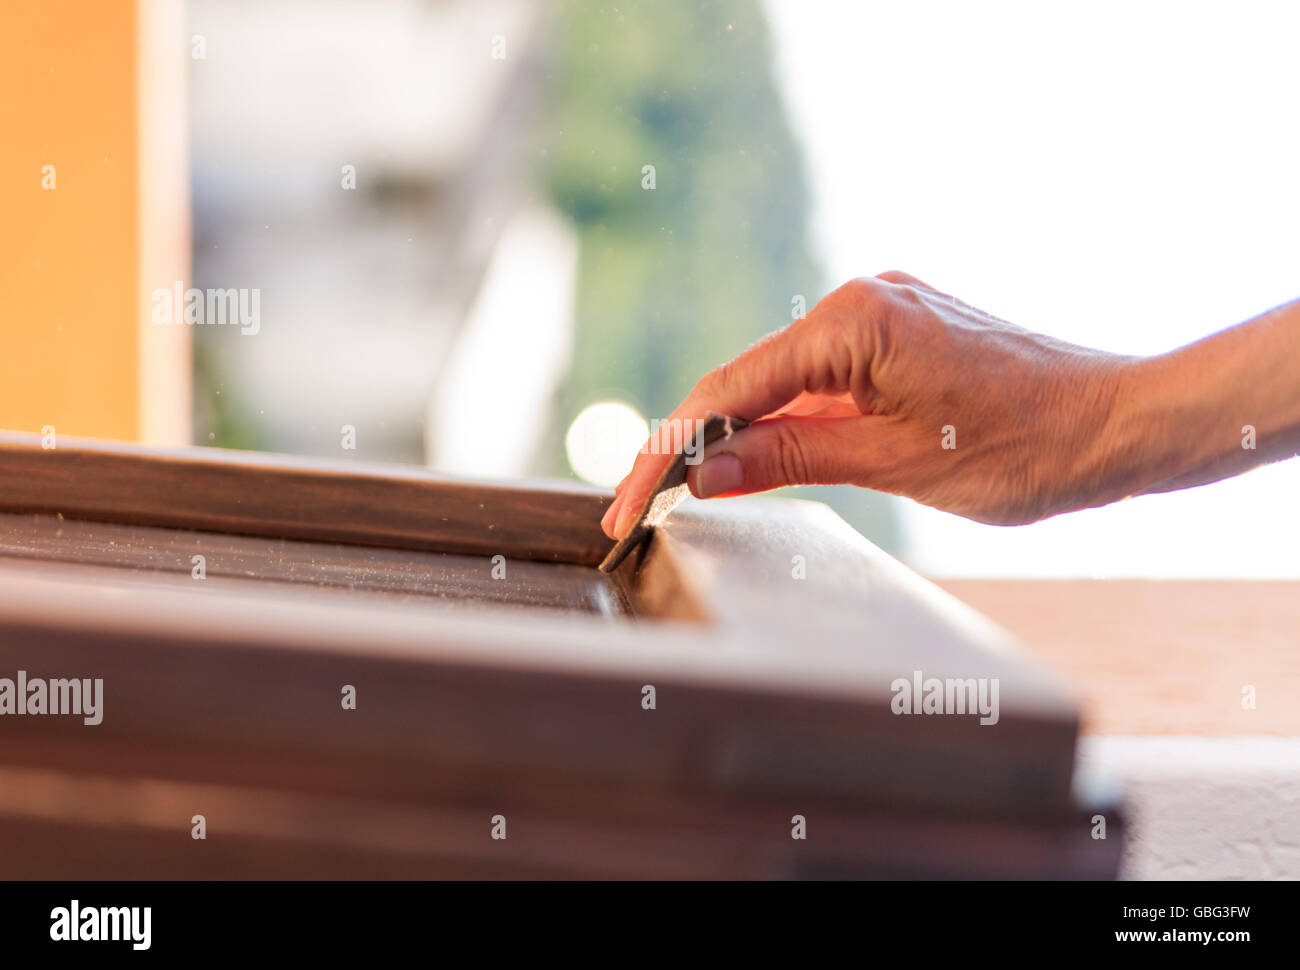 Hands of a woman with sandpaper doing DIY work on wooden fixtures - Stock Image